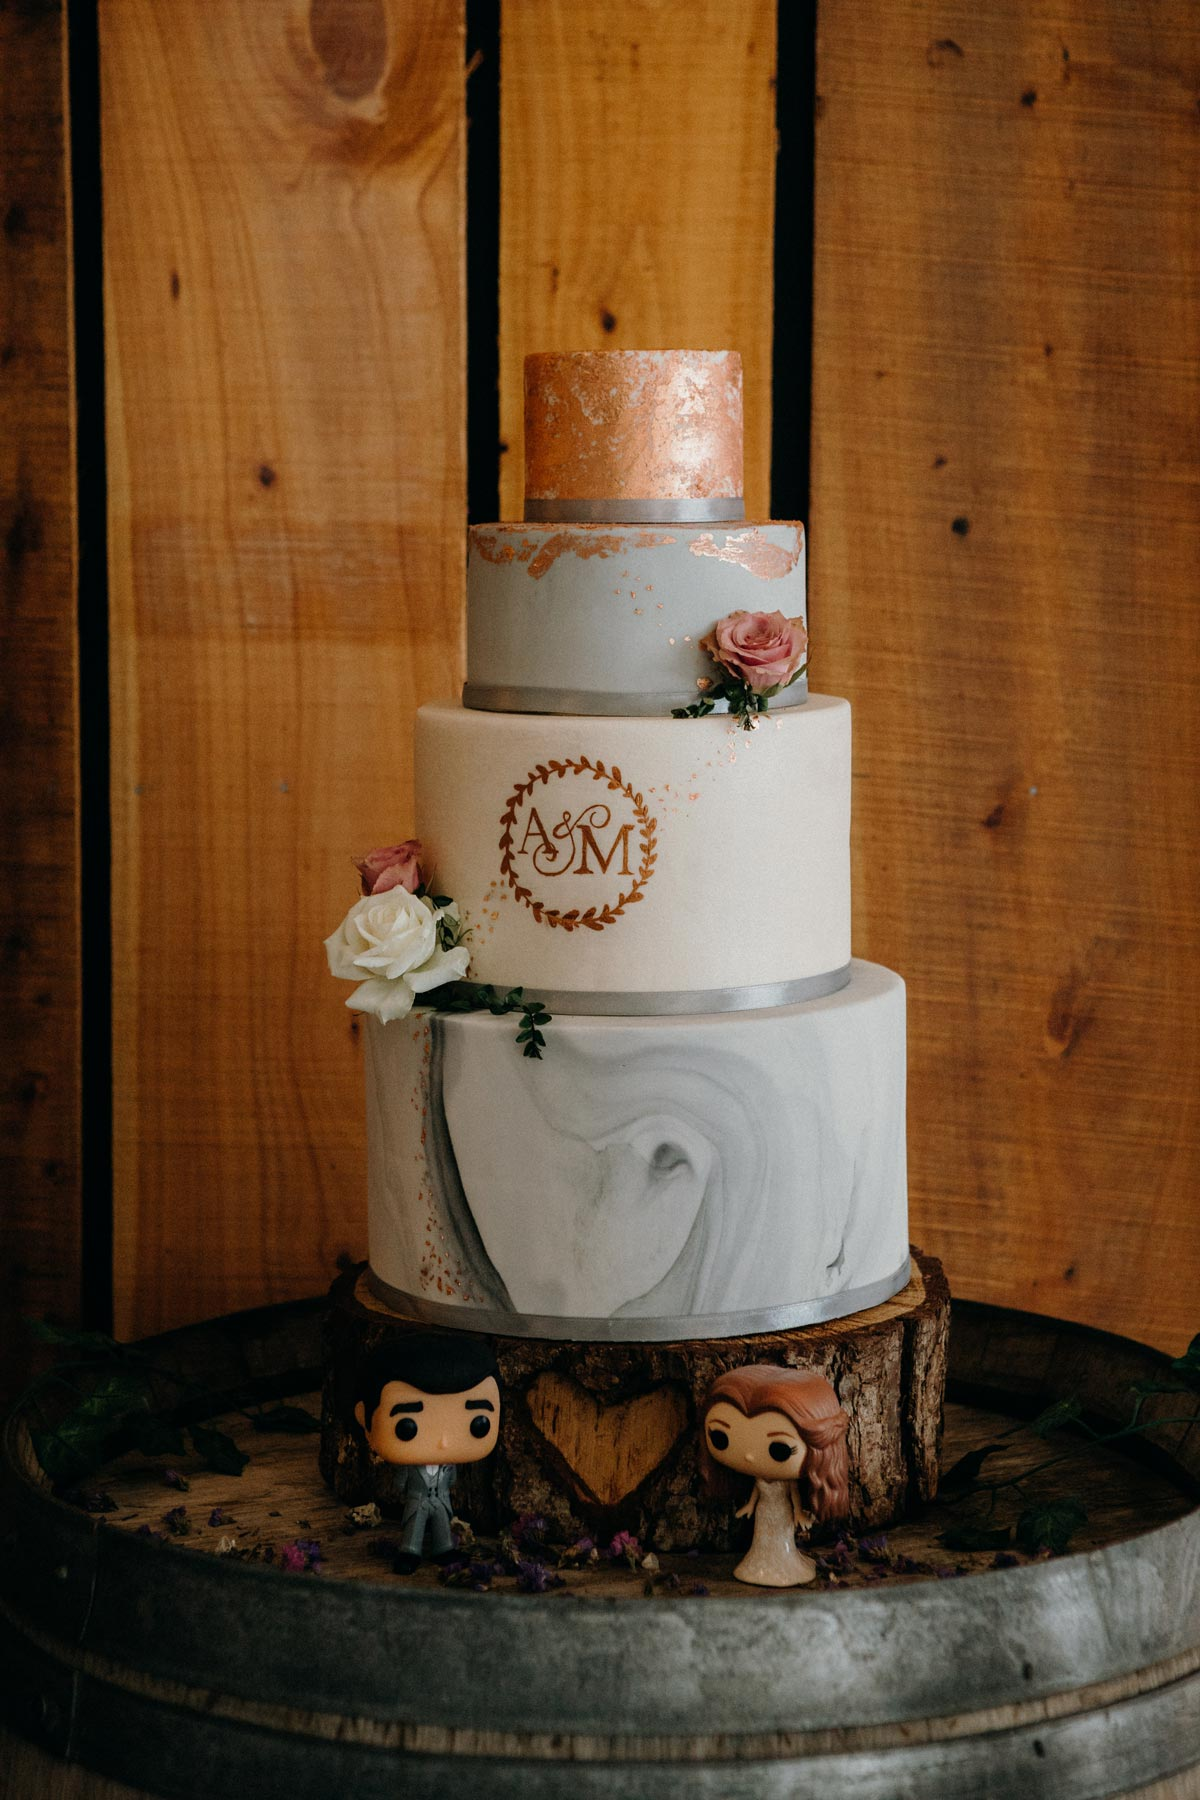 megan milne cake creations black barn wedding cake photo lake tarawera rotorua